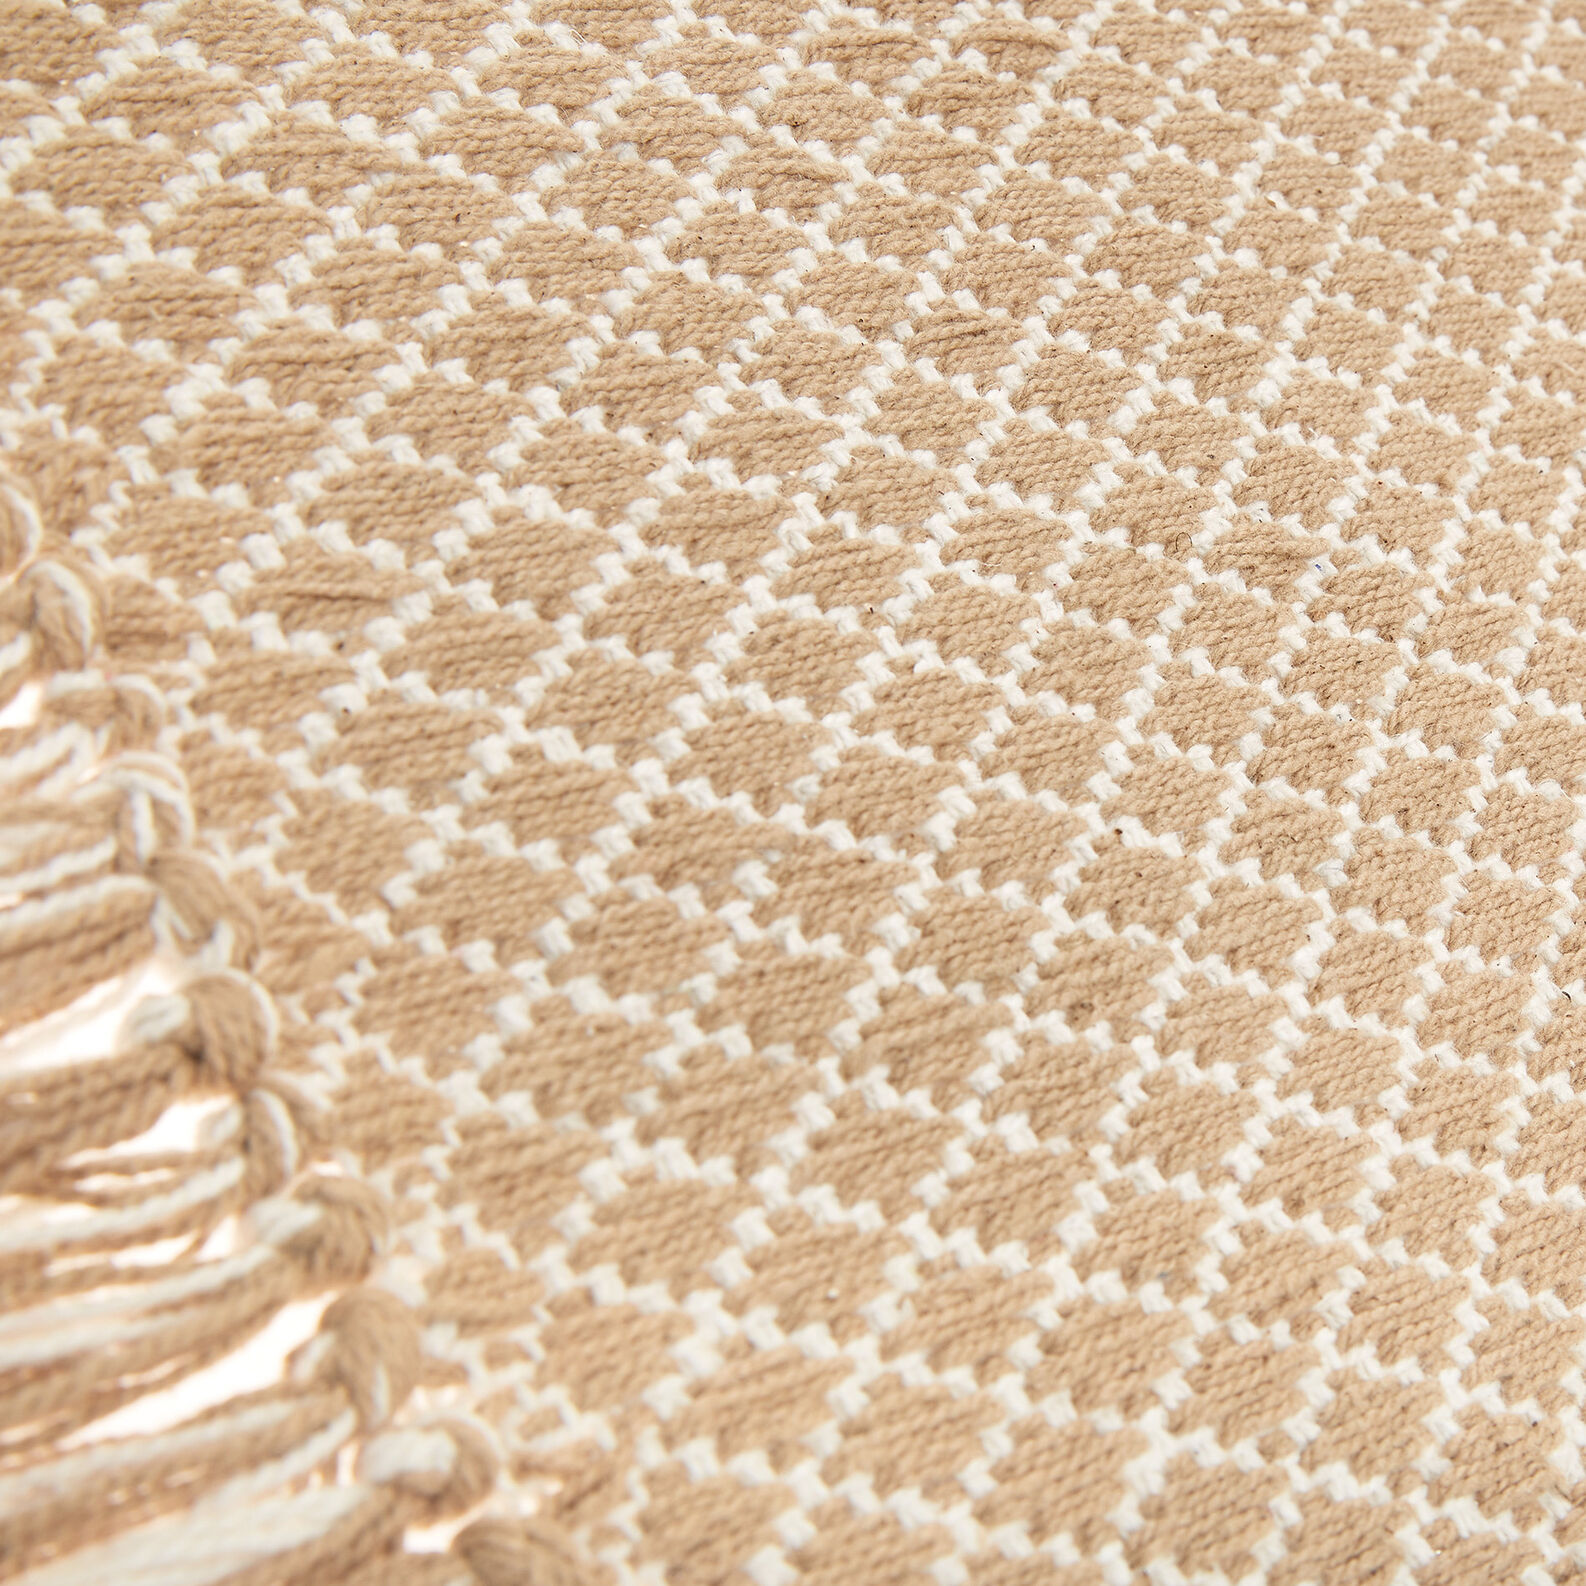 Hand-woven cotton kitchen mat with fringing